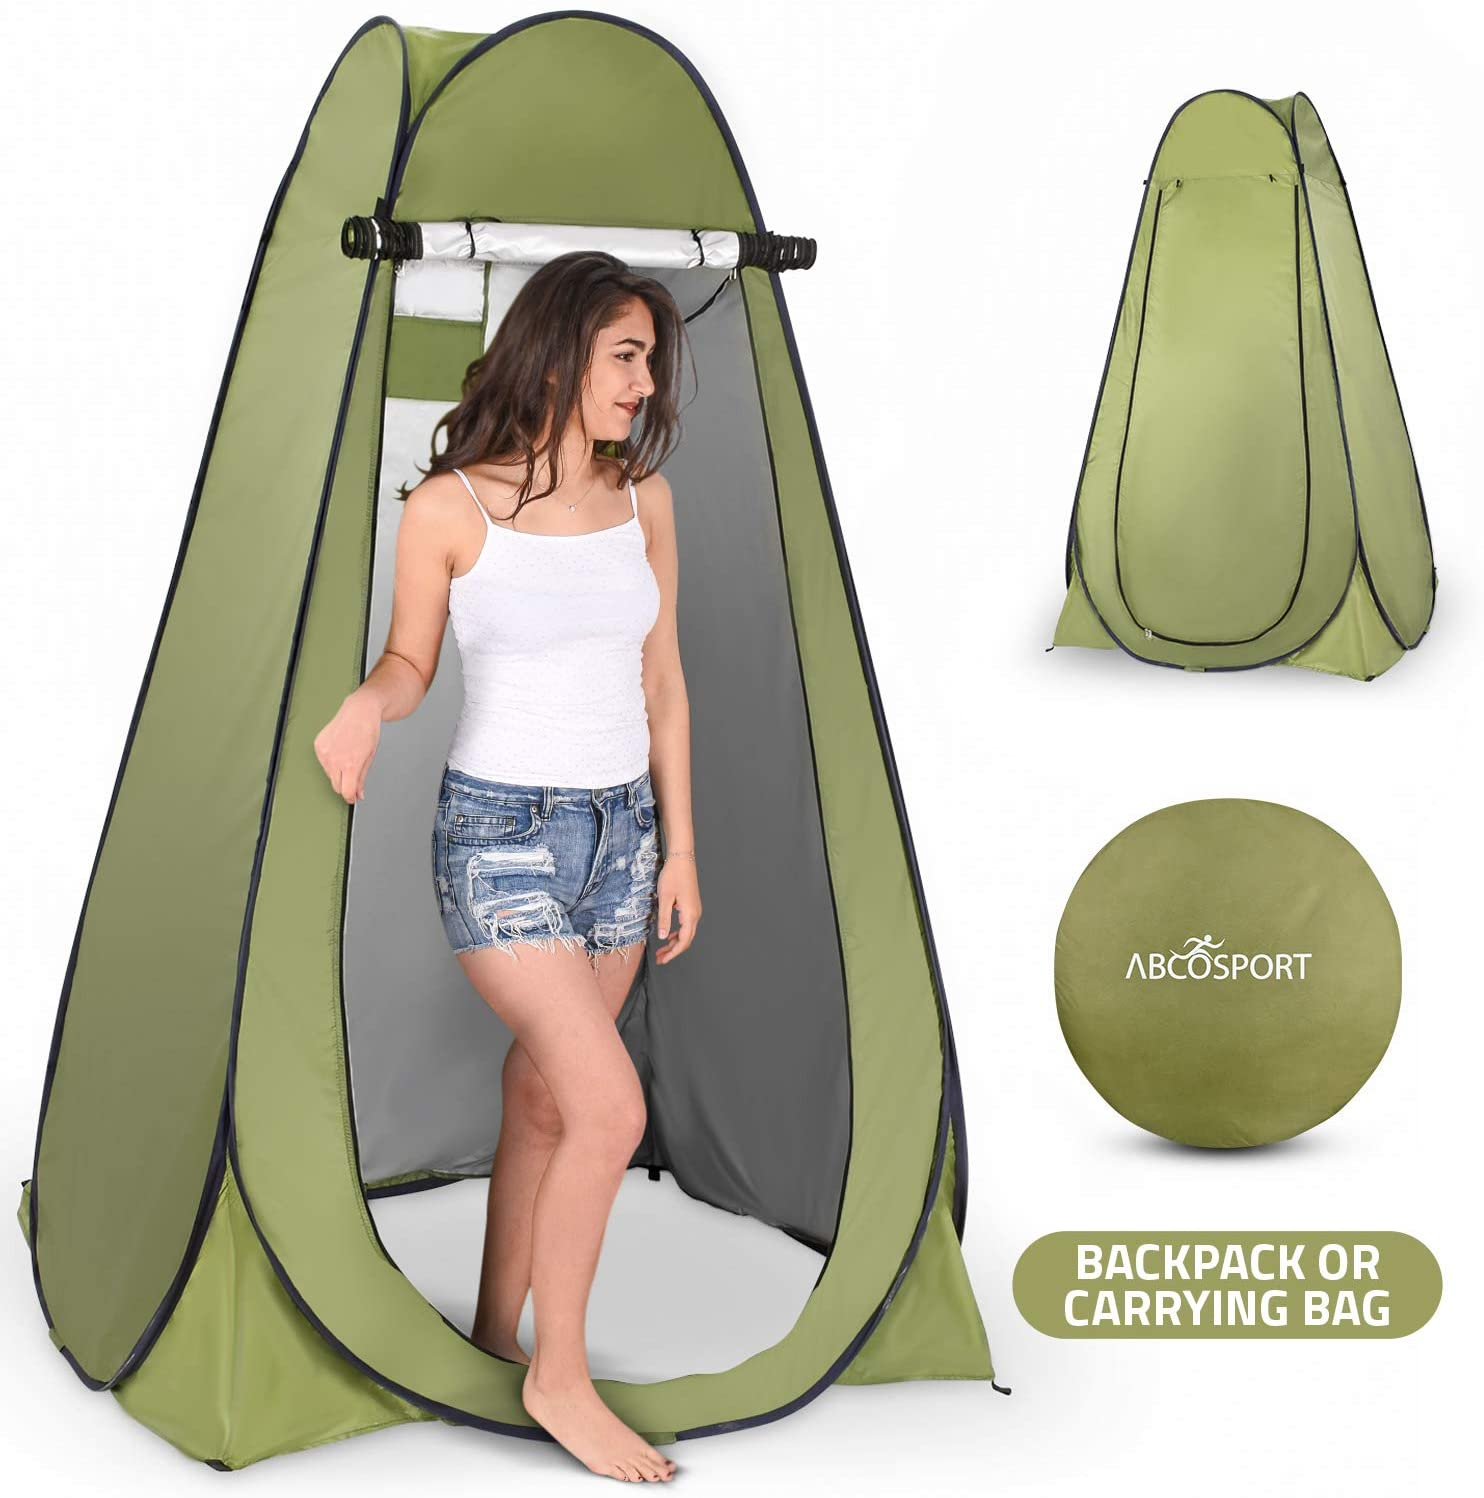 best Pop Up Privacy Tent - Campsite Toilet and Changing Room - Foldable Shower Tent For Camping and Beach